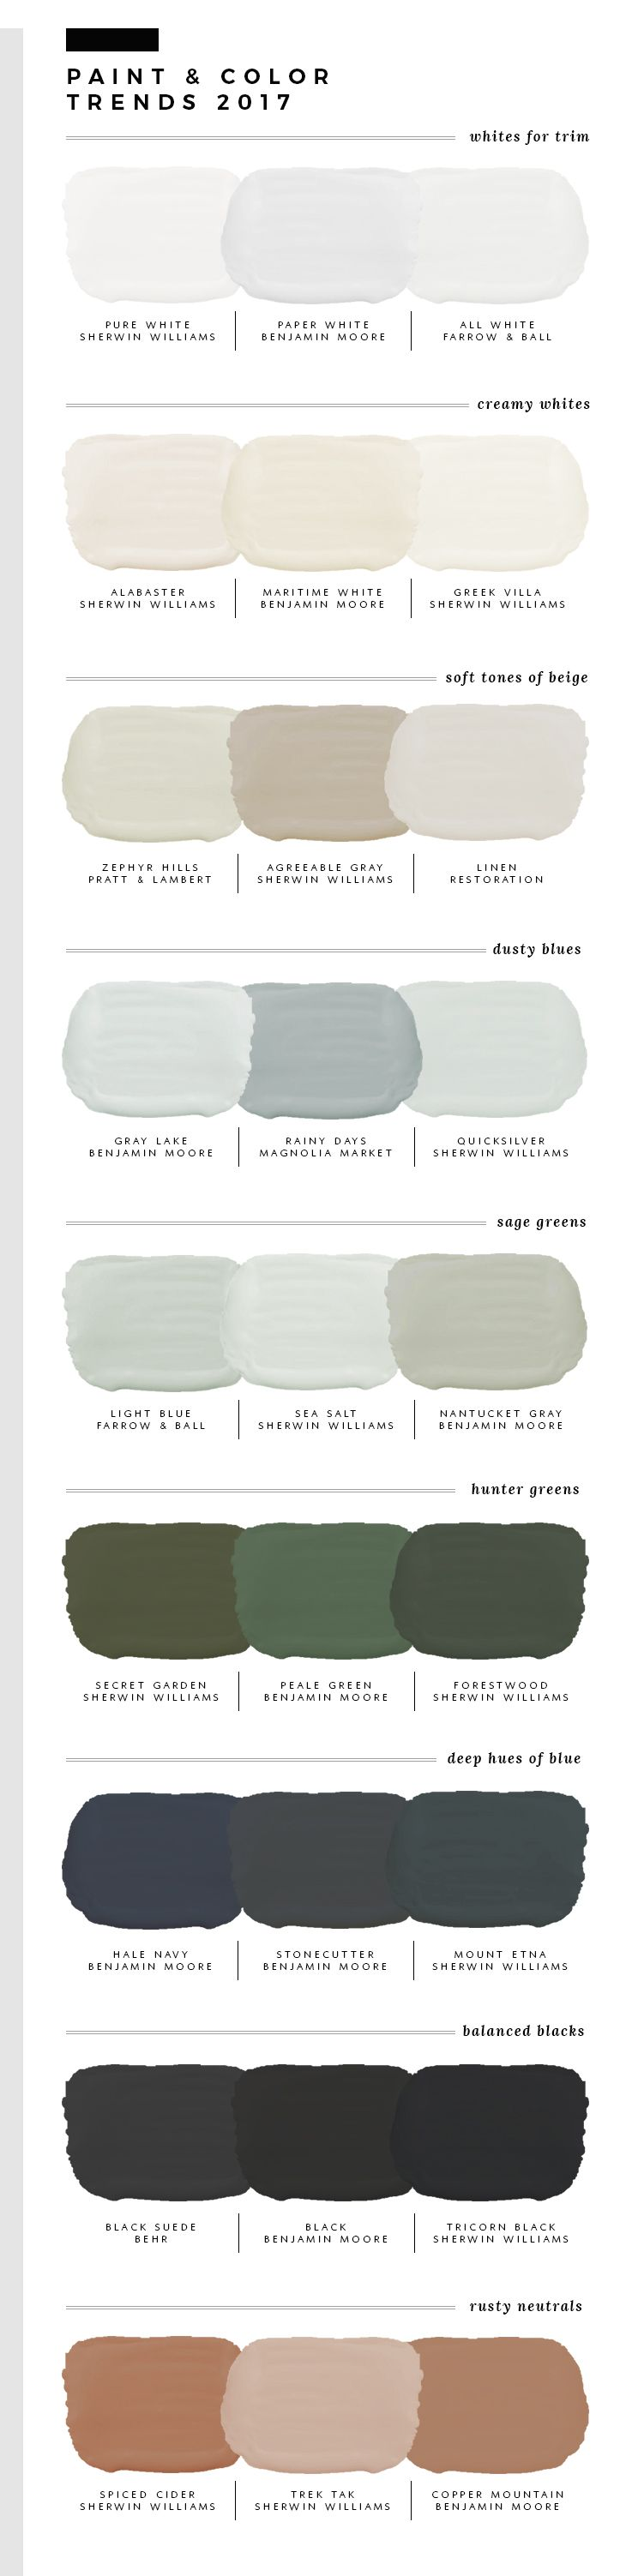 3422 best images about color and paint ideas on pinterest Trending interior paint colors